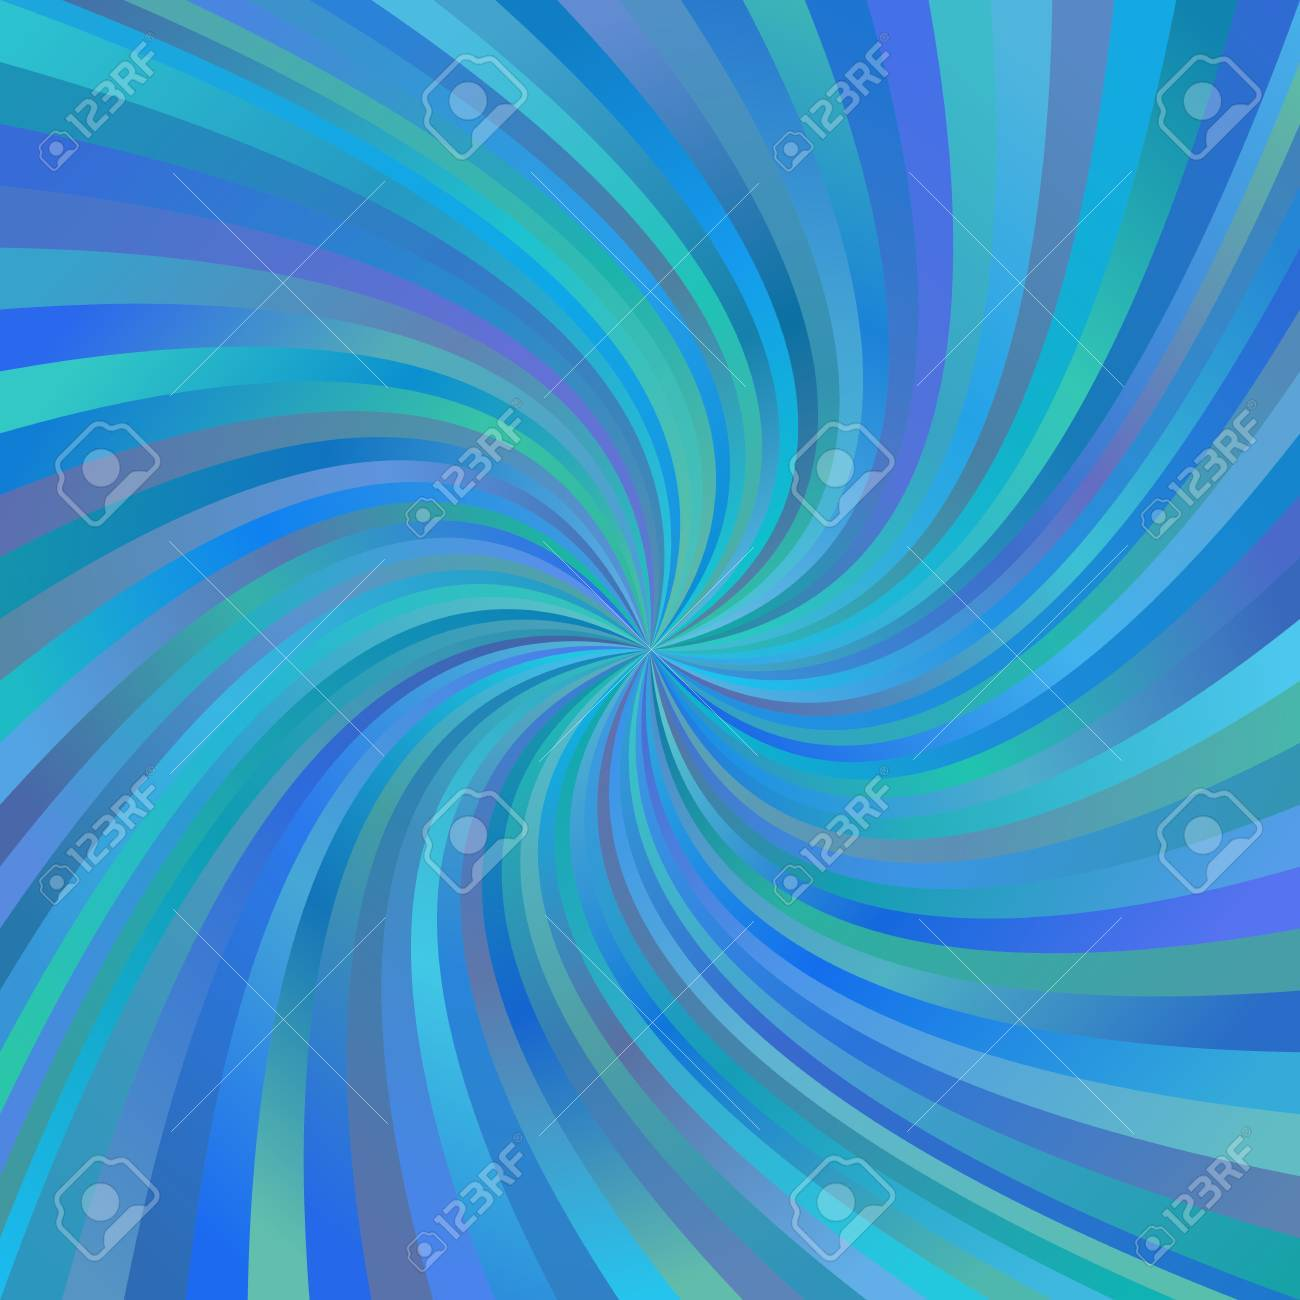 eae2ac9e37 Blue abstract multicolored spiral ray design background Stock Vector -  48448741